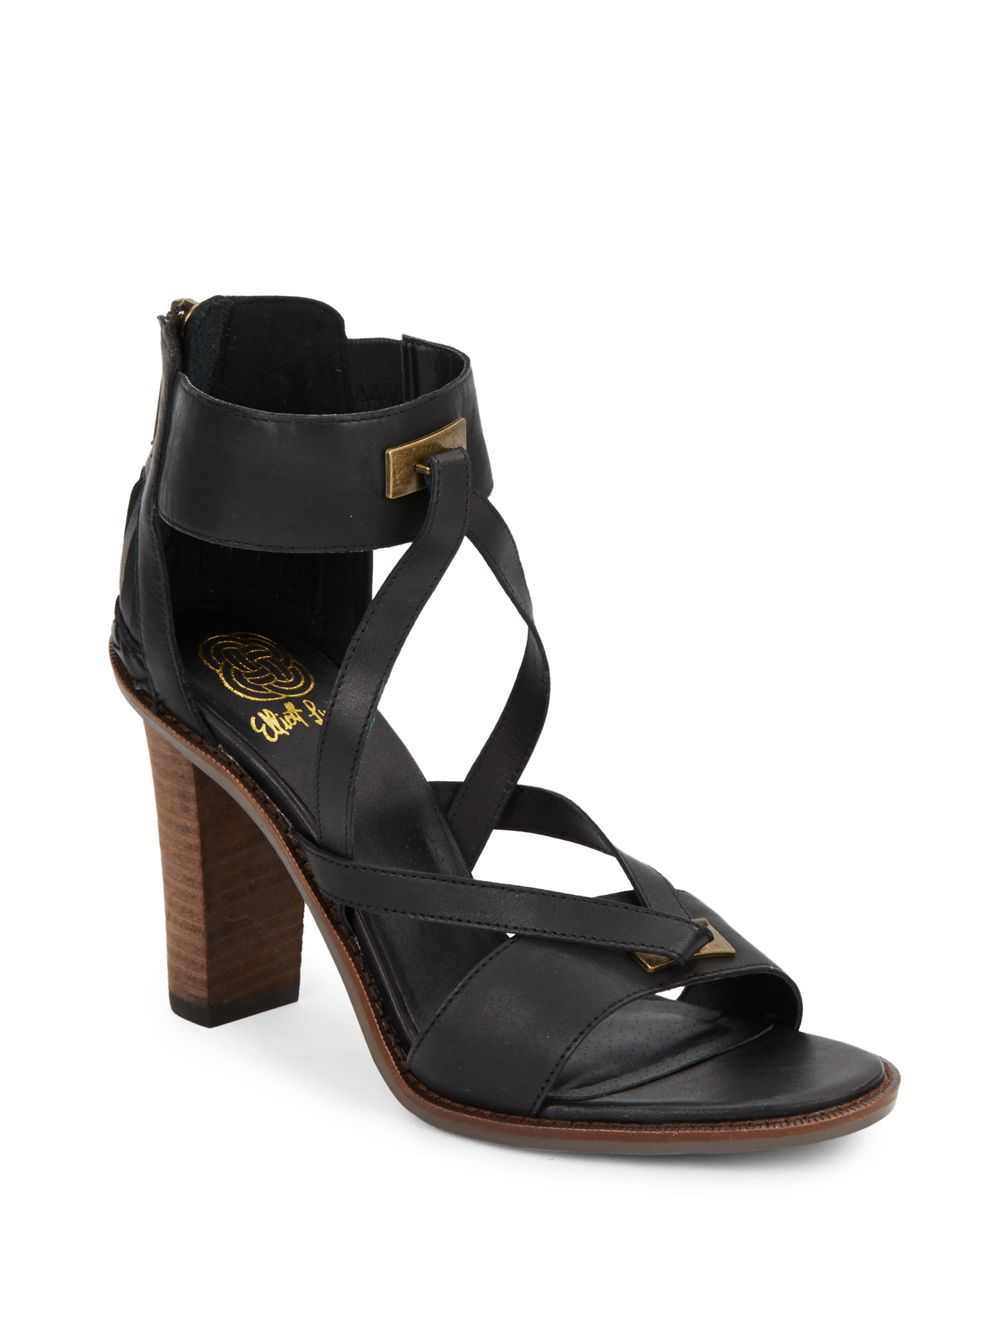 elliott lucca leather ankle cuff sandals in black lyst